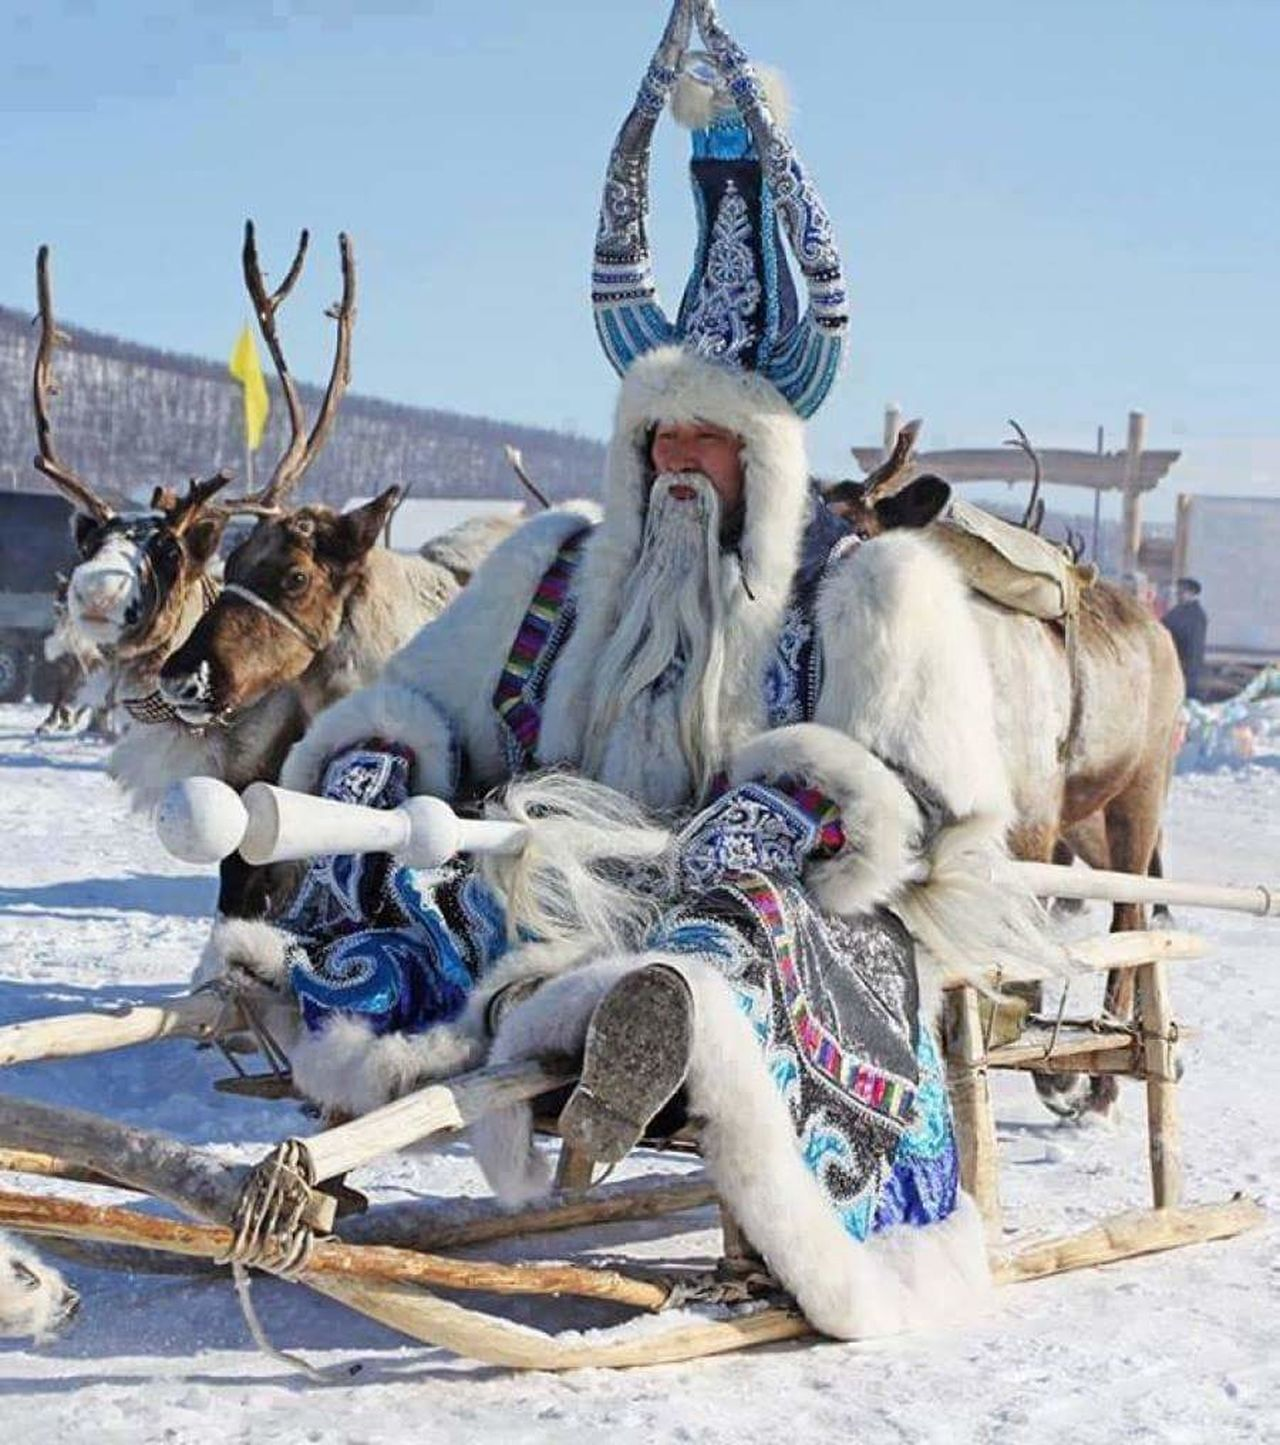 Ayaz Baba Domestic Animals Animal Themes Mammal Animal Livestock Working Animal Winter Portrait Outdoors Beach Large Group Of Animals No People Pets Agriculture Day